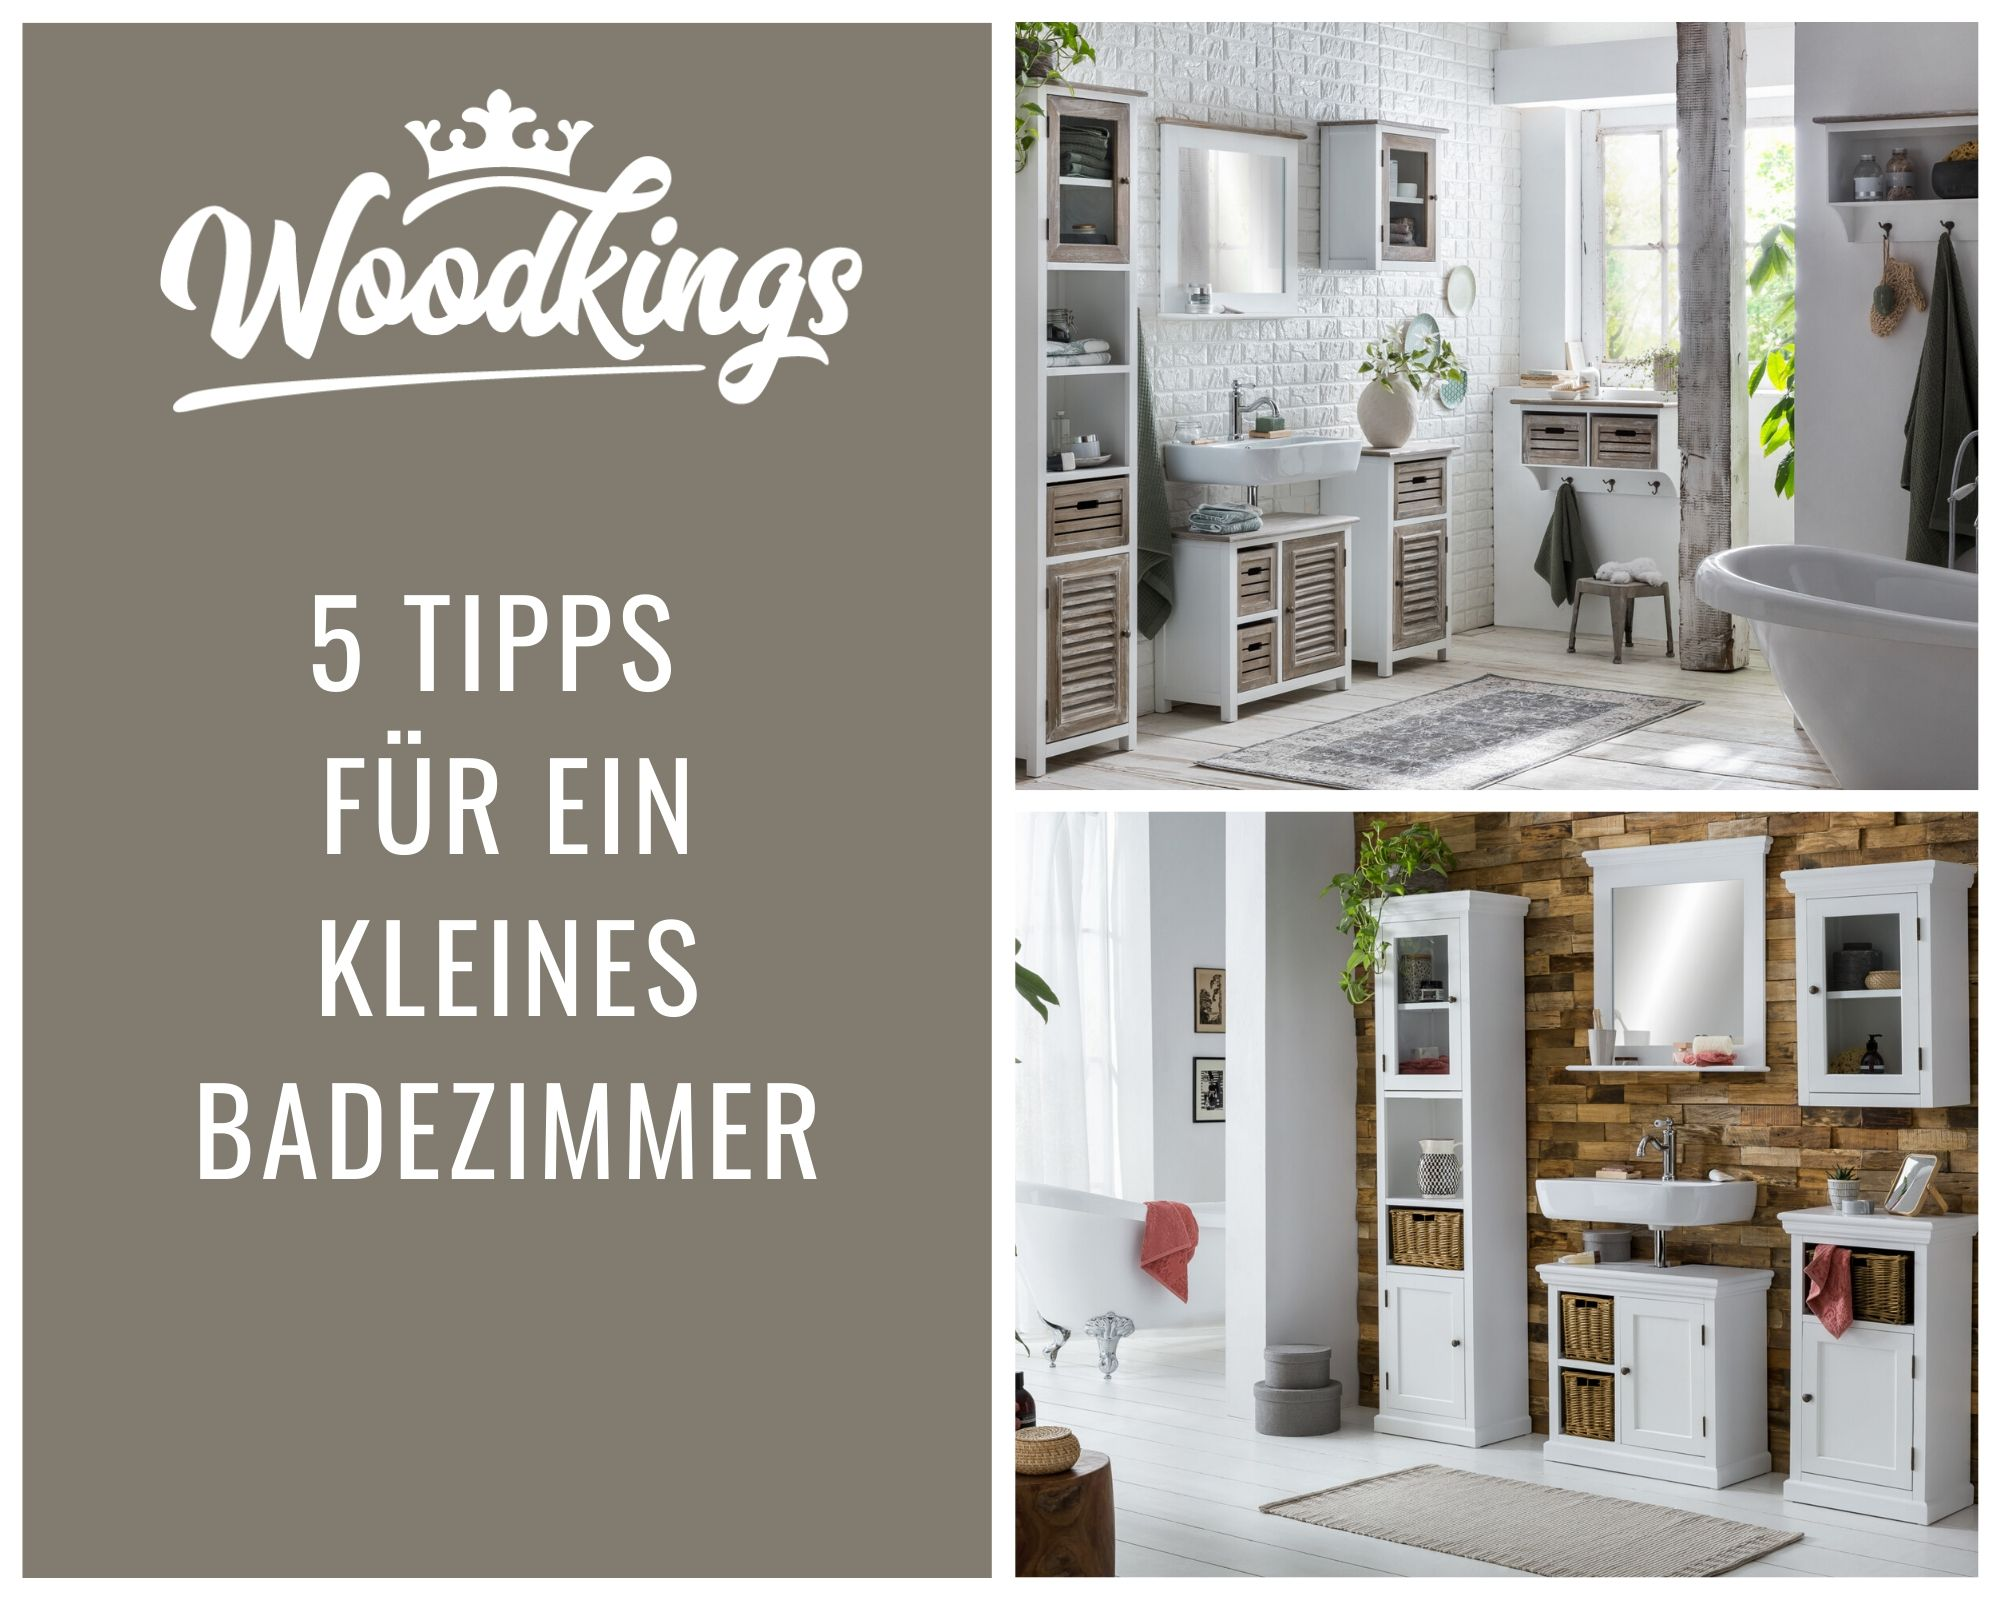 TRENDS & NEWS | Woodkings Shop